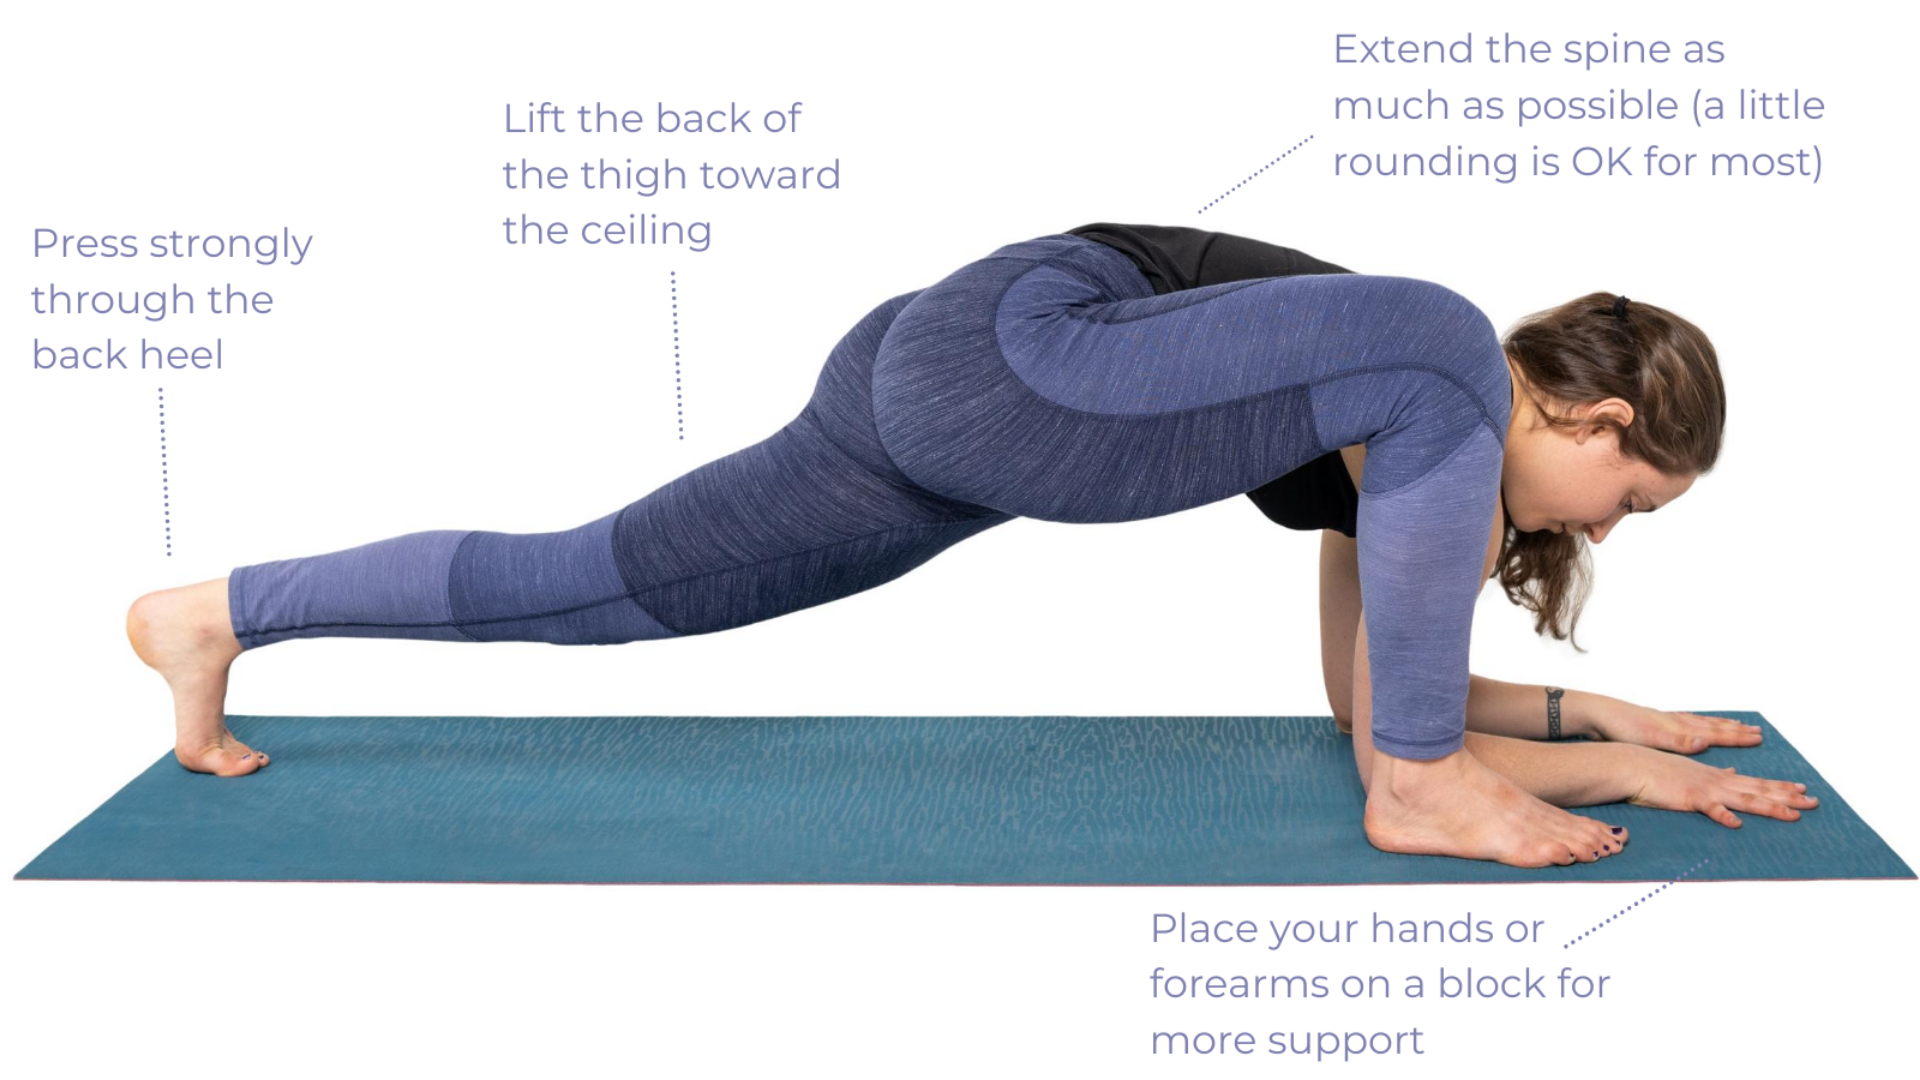 Yoga teaching tips to make practicing Lizard Pose (Utthan Pristhasana) more enjoyable and unique to your body